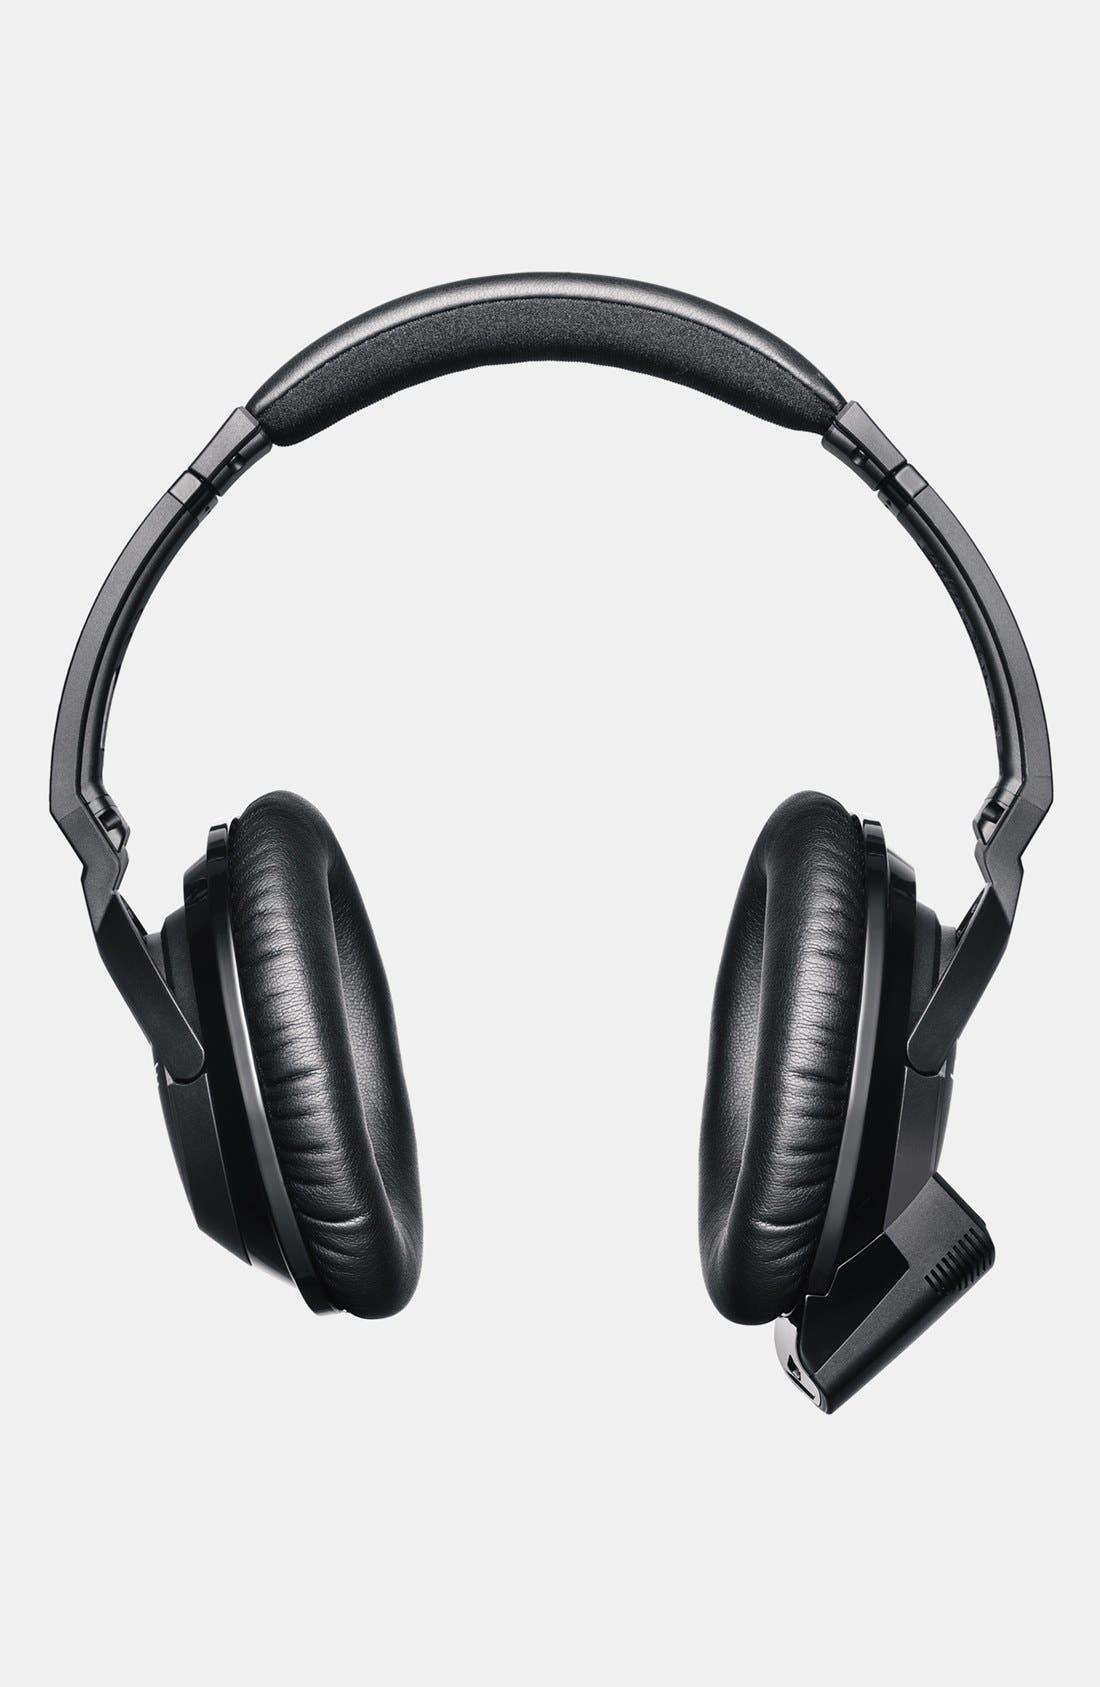 Bose® SoundLink® Around-Ear Wireless Audio Headphones